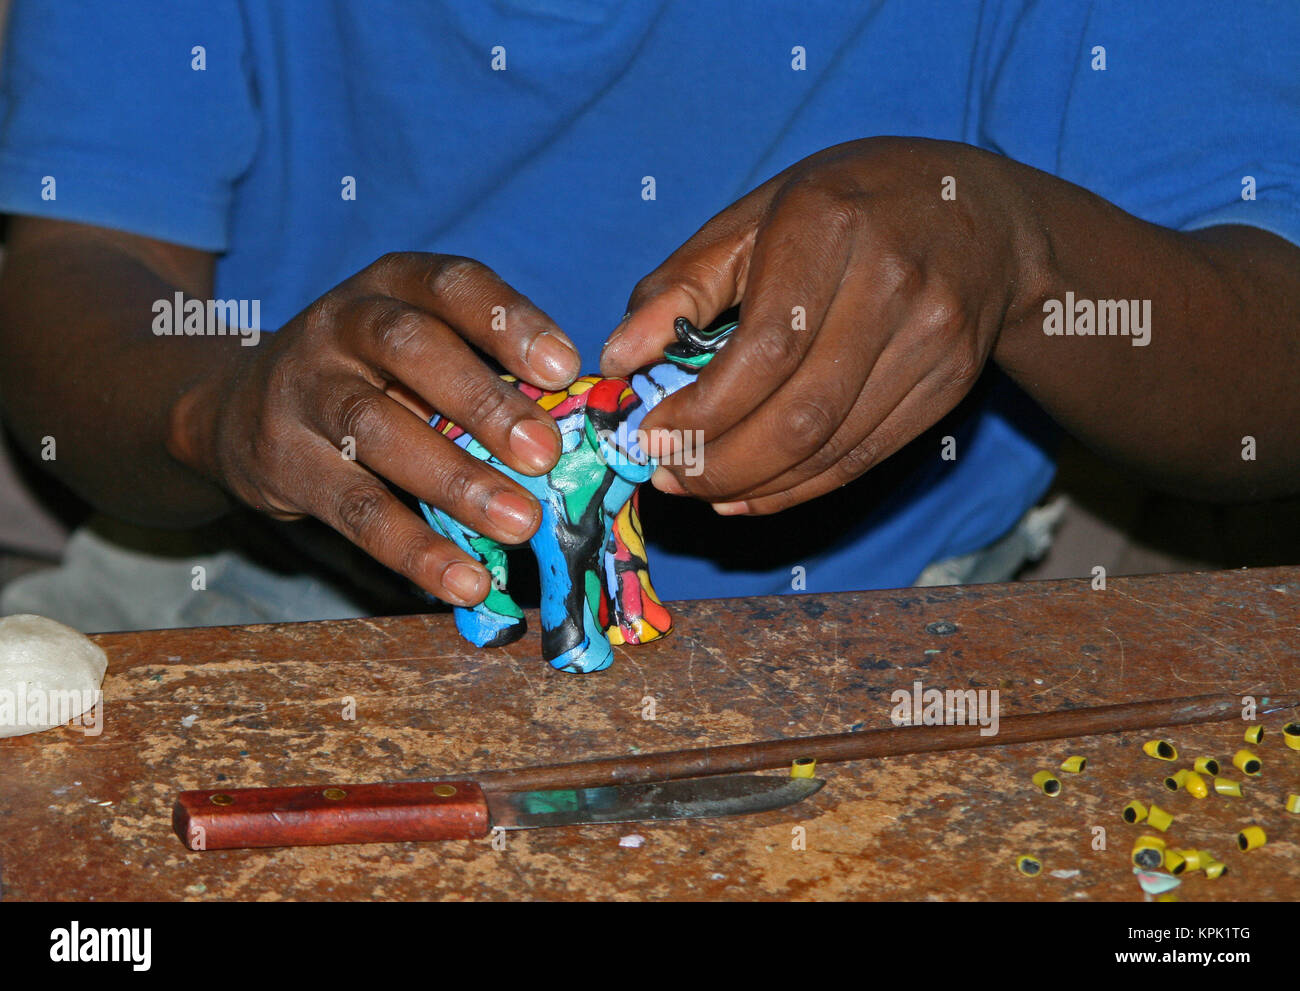 Candlemaker with carved colourful elephant shaped candle, Kingdom of Swaziland. Stock Photo